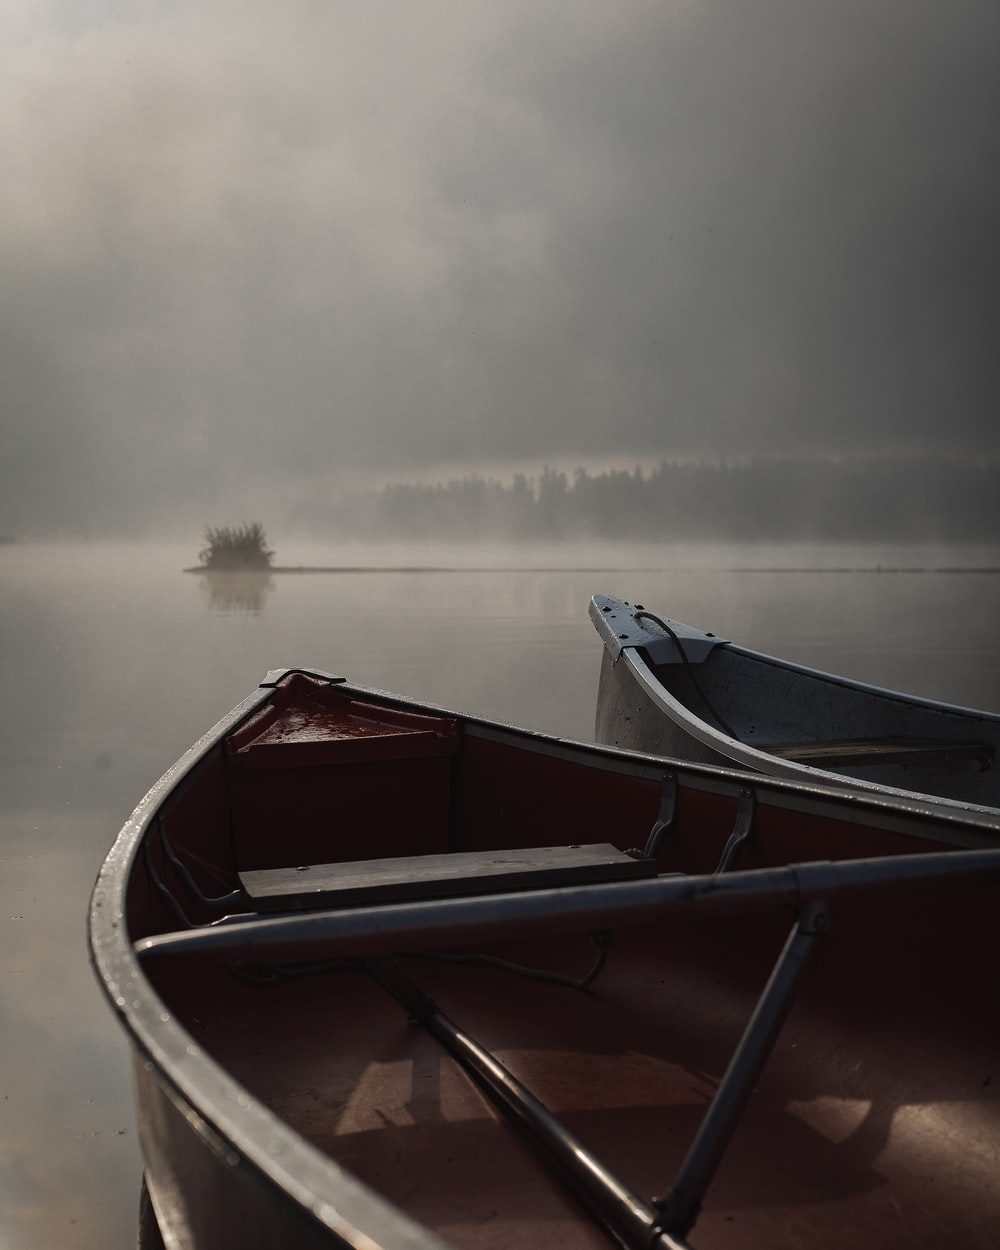 boats on body of water during foggy weather